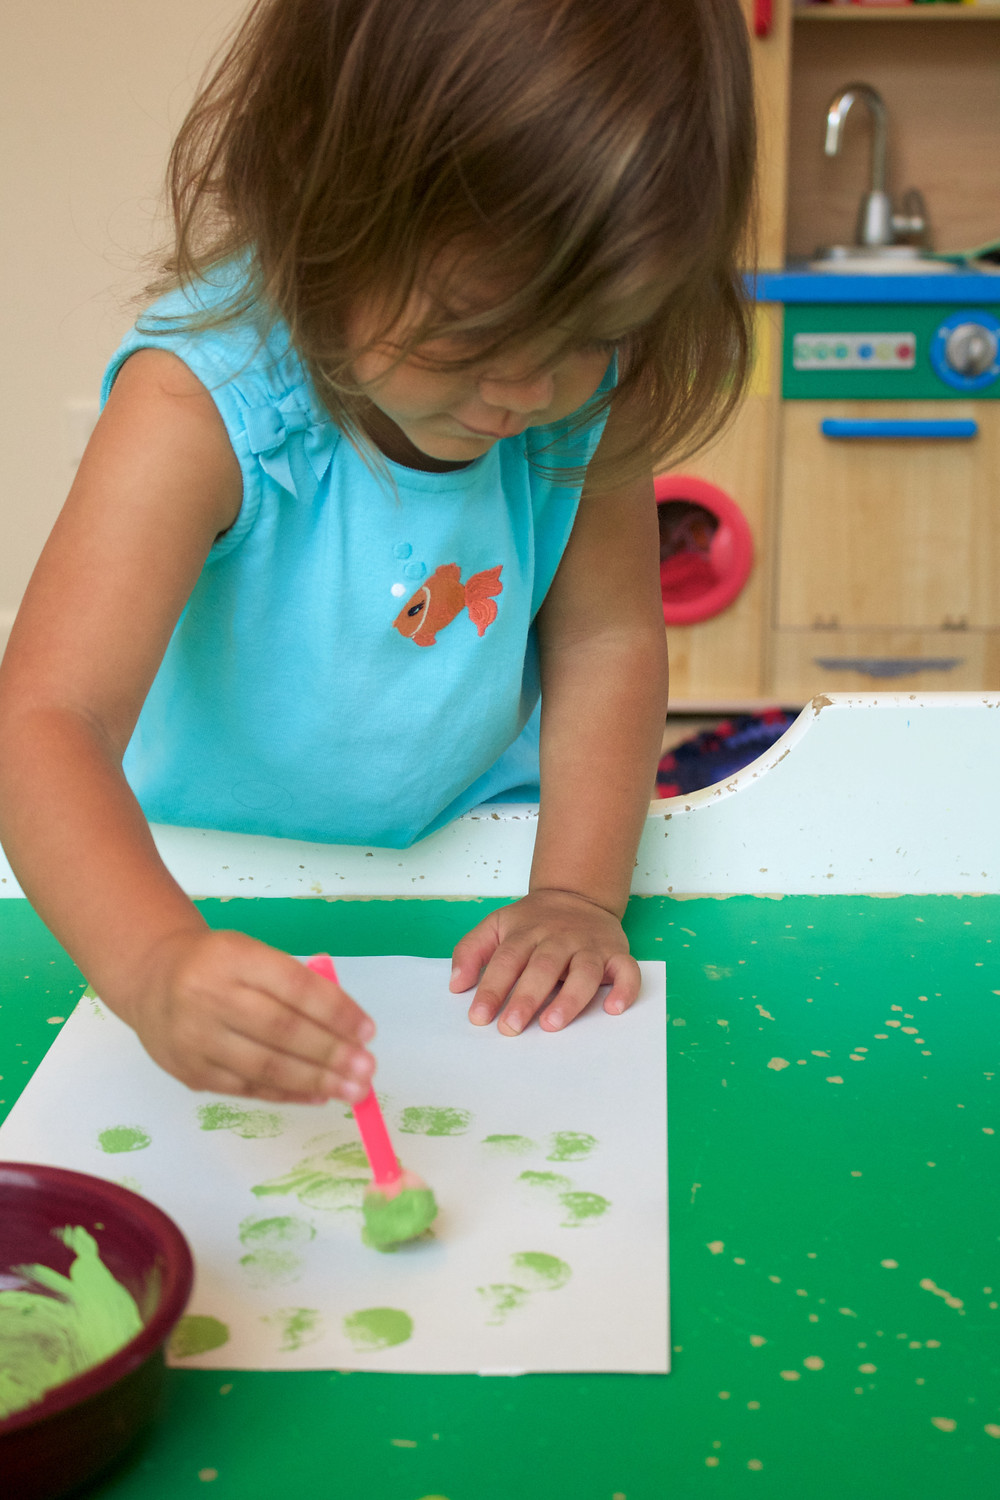 A Blue Sky Daycare home daycare child paints during a guided art project